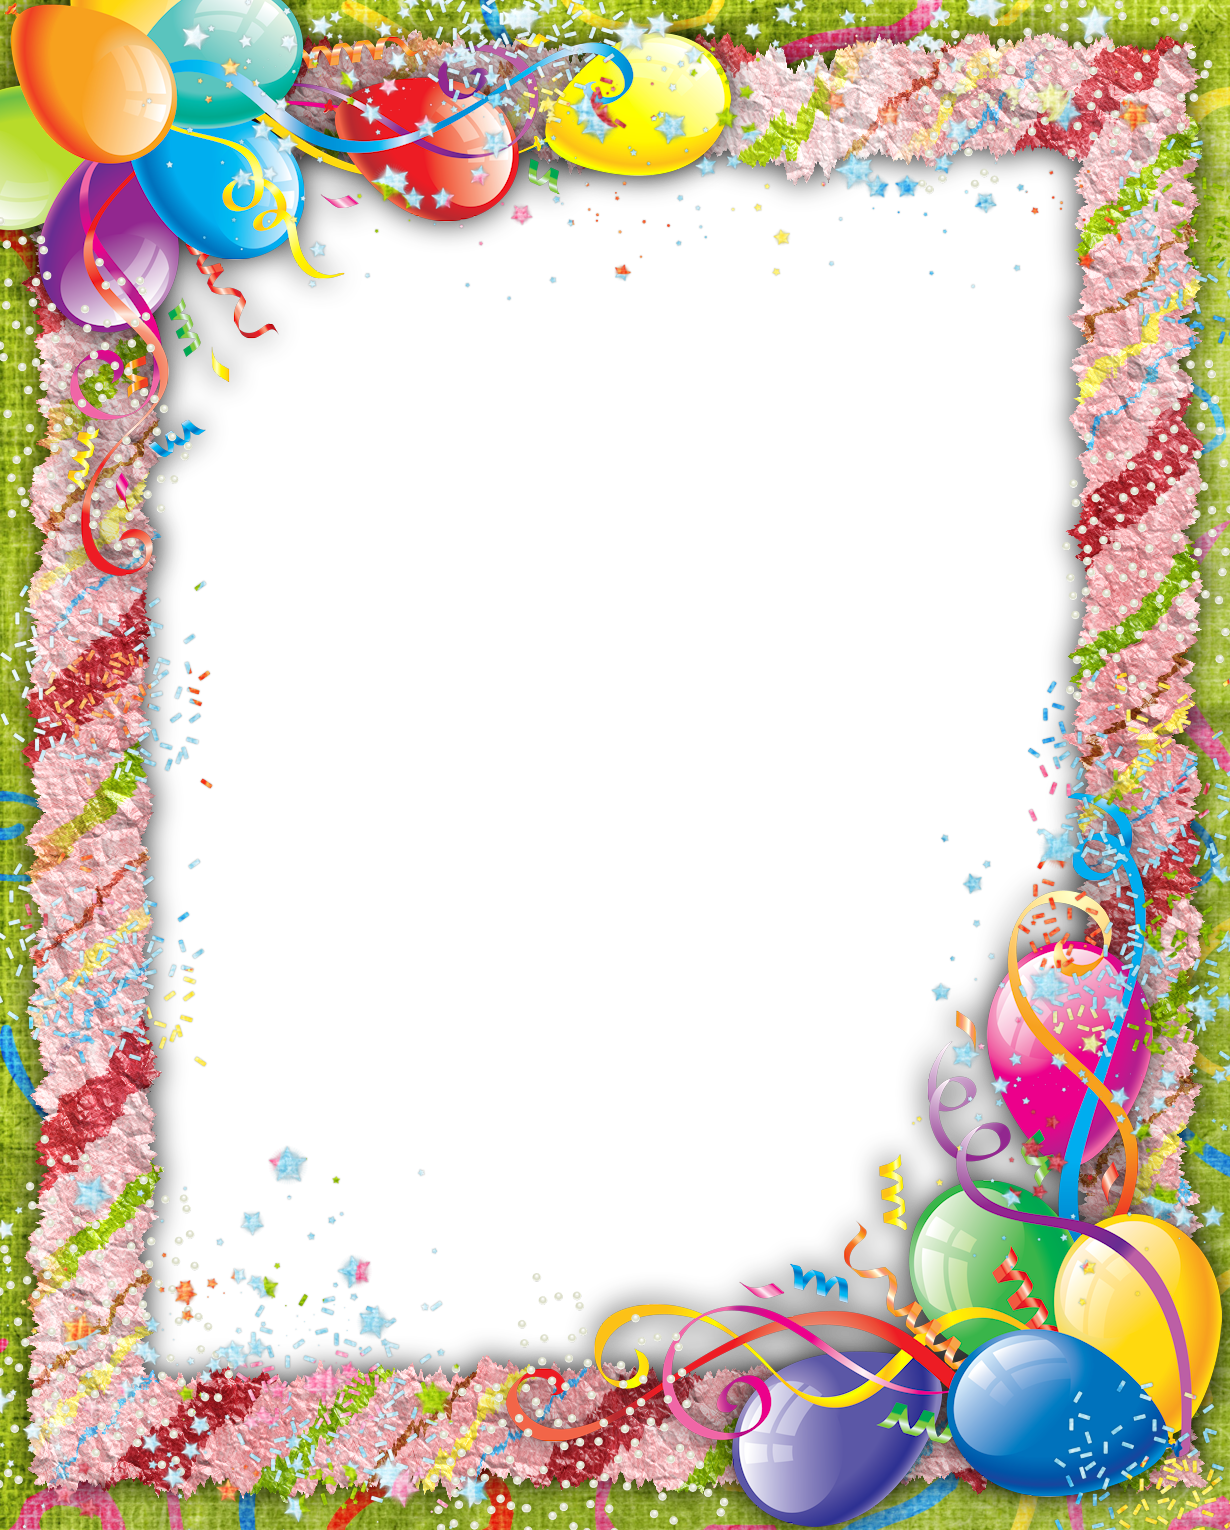 Birthday picture frame clipart image royalty free library Pin by Ahmed Elsayad on Transparent | Birthday frames, Birthday ... image royalty free library